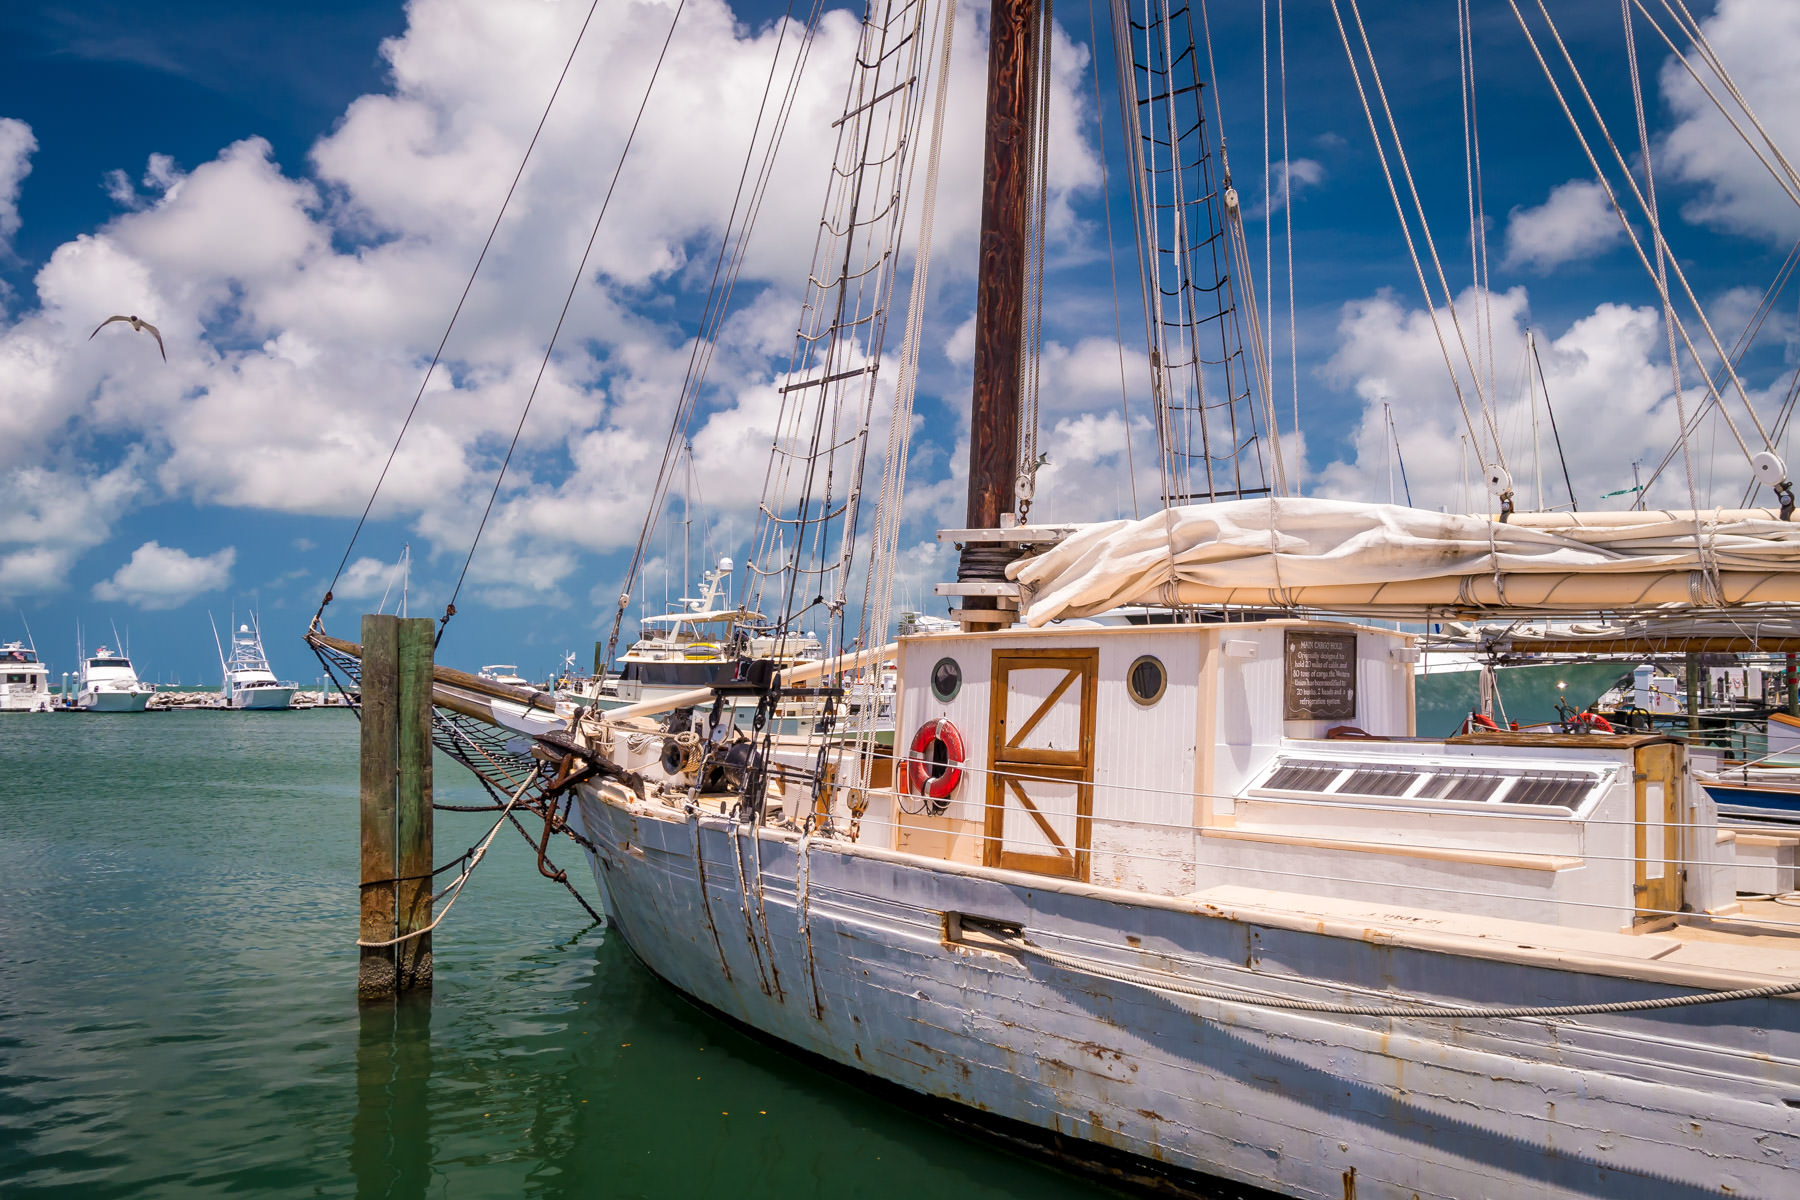 The schooner Western Union—the flagship of the State of Florida—sits at her berth in the Key West Bight on a warm, cloudy Spring day.